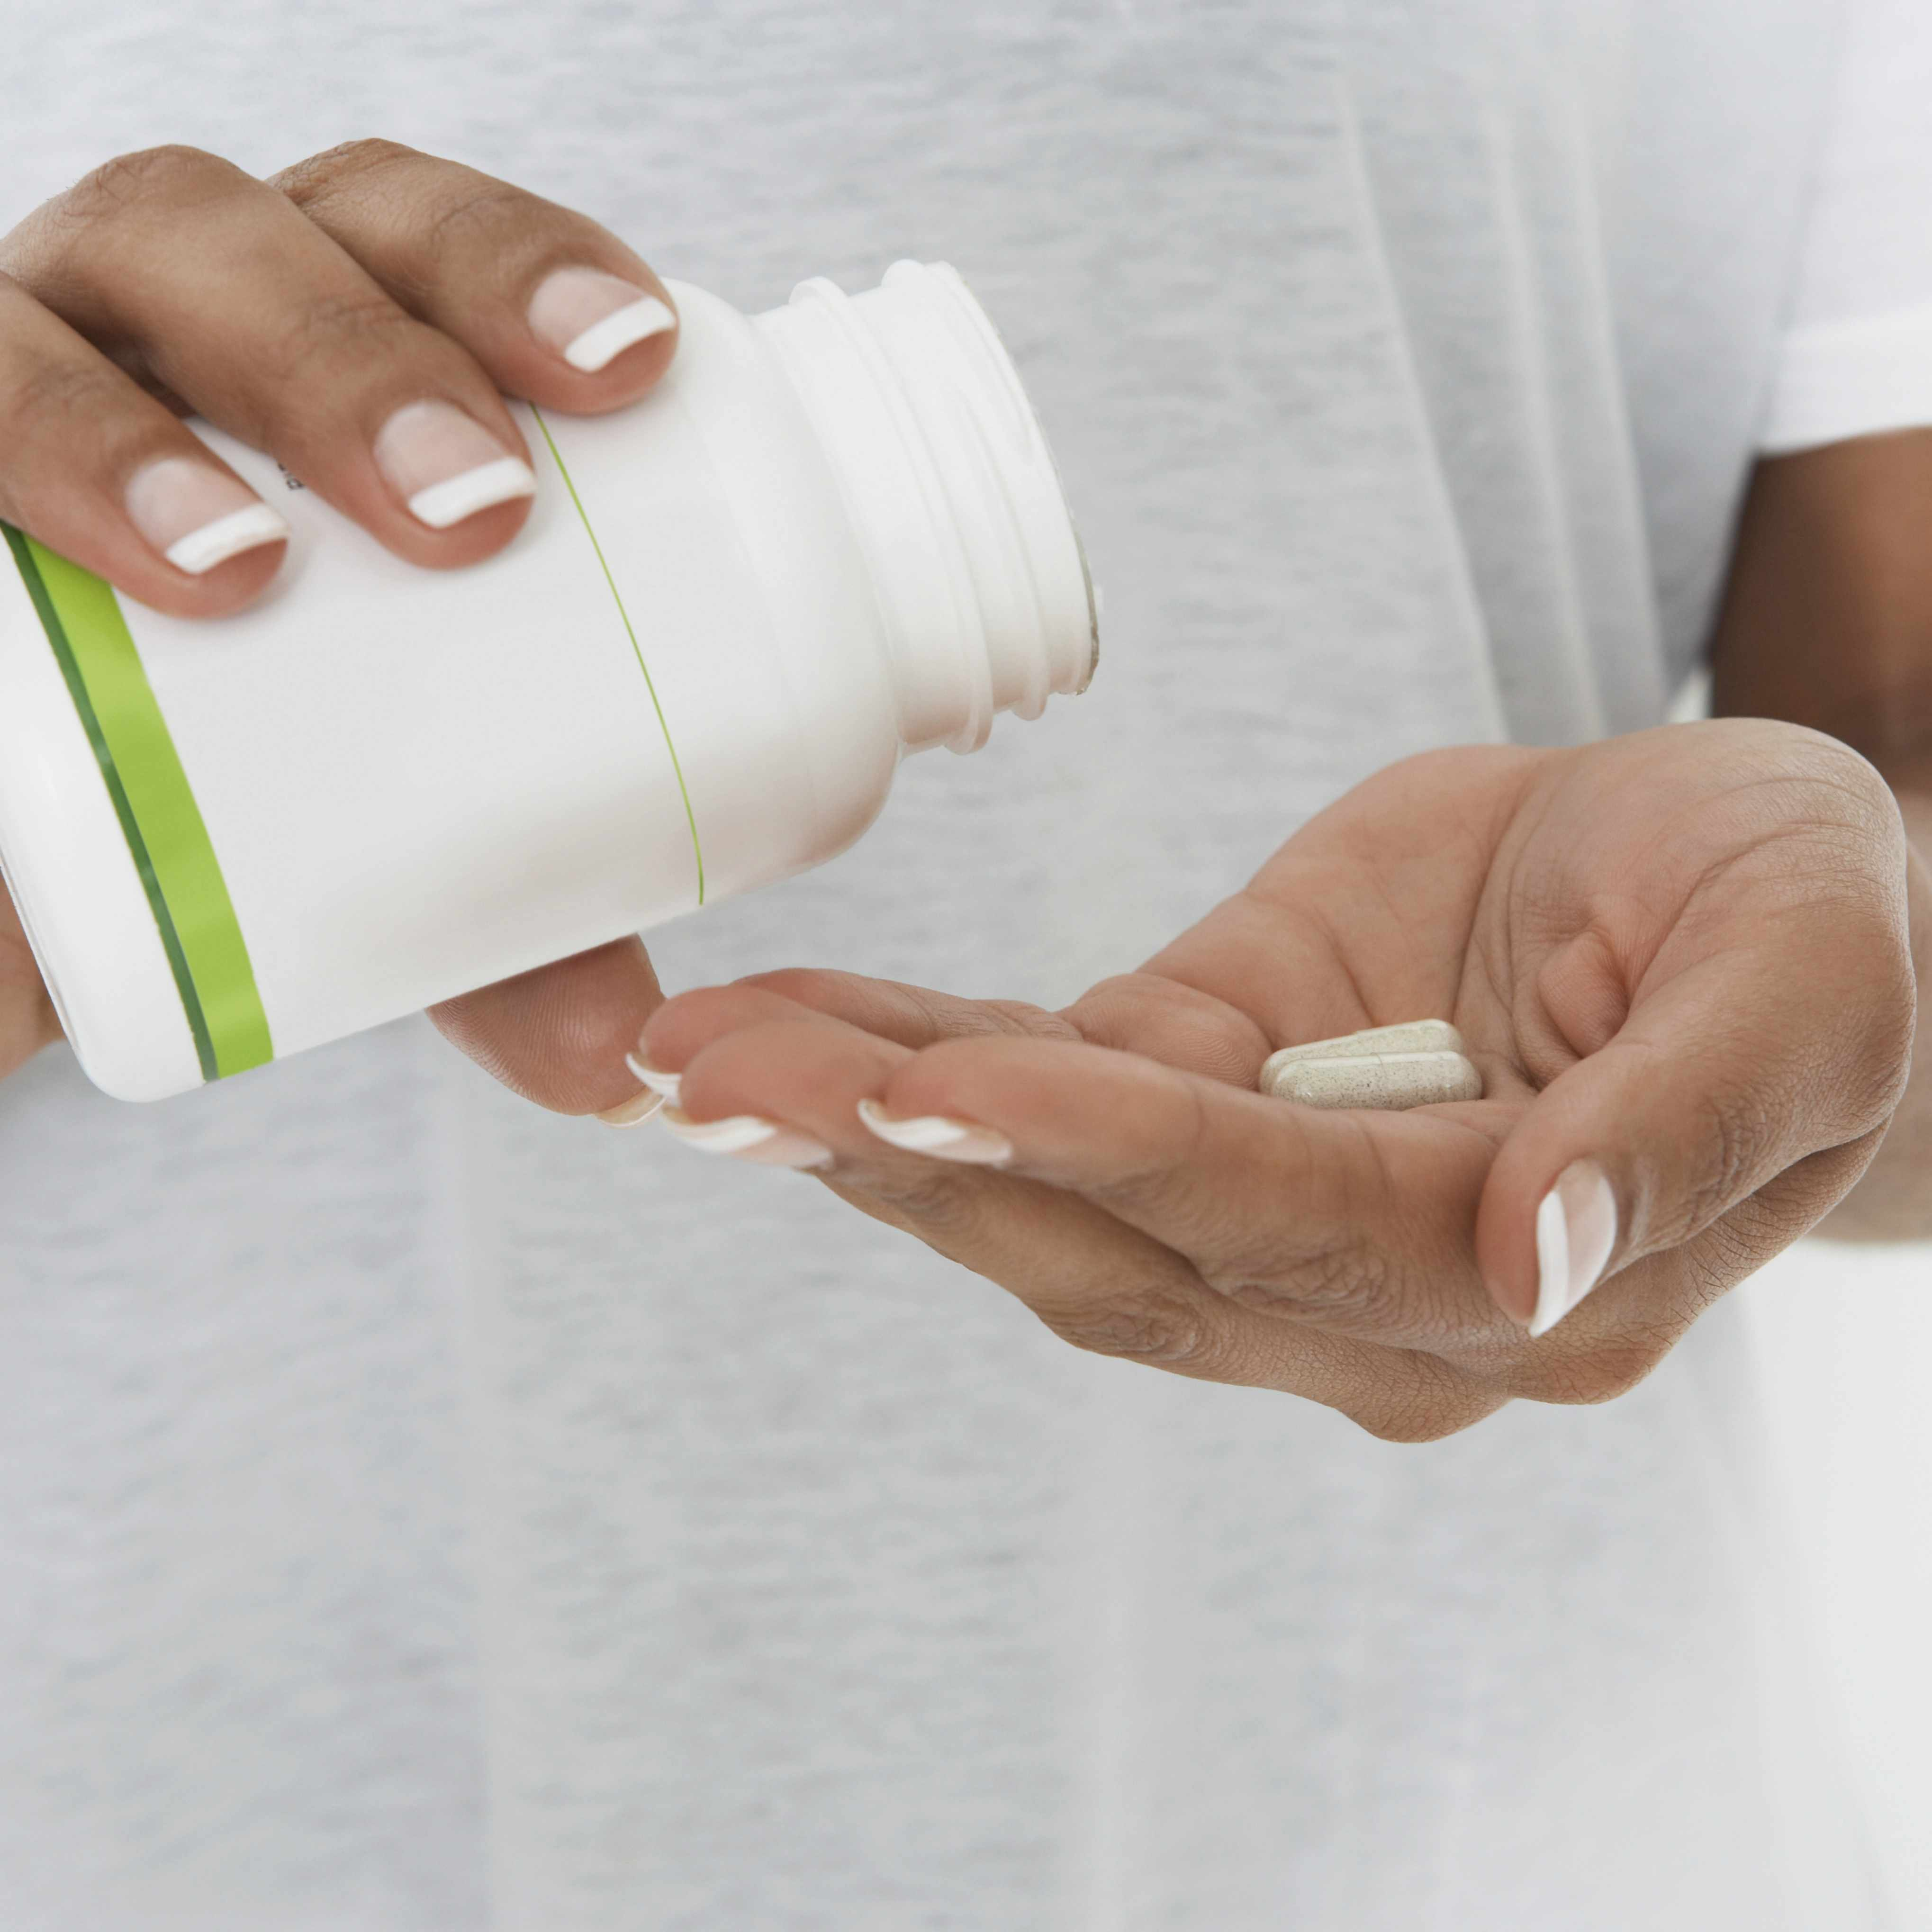 a woman pouring pills from a bottle into her hand